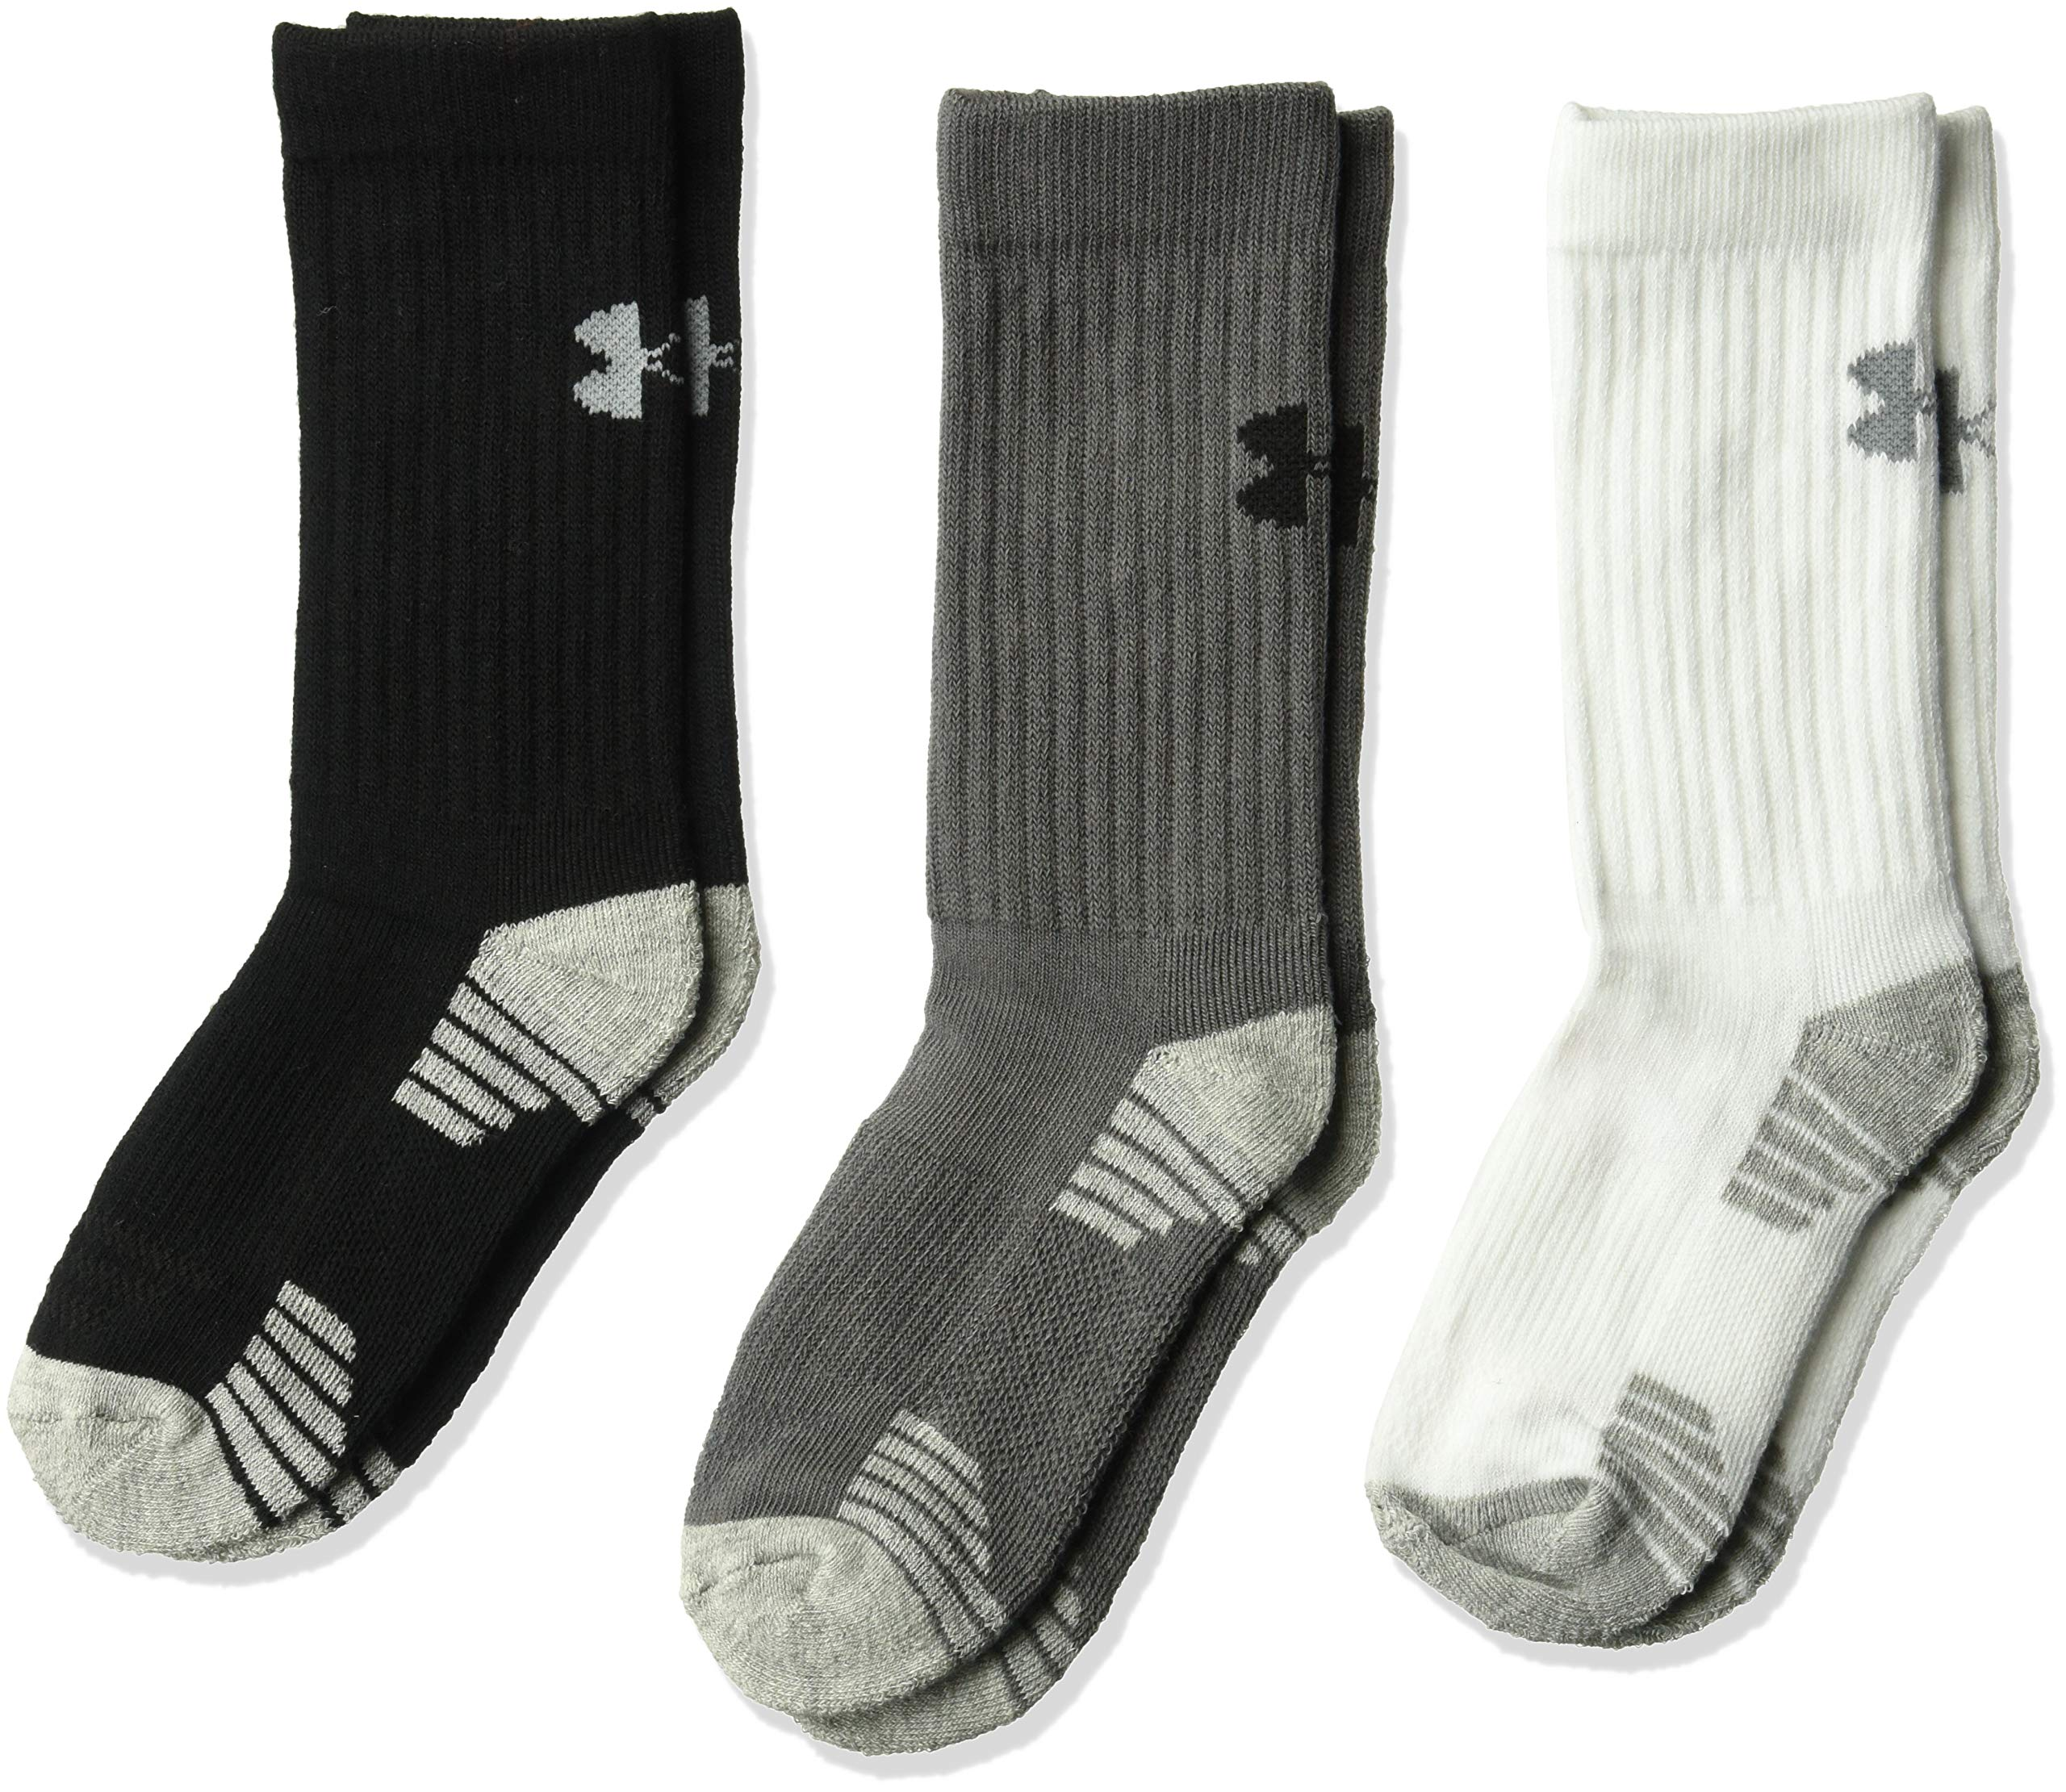 Boys Under Armour 3-Pack HeatGear Crew Socks ,Graphite Assortment (1303207-040) / Black/White/Grey,Small (Youth Shoe Size 13.5K-4Y) by Under Armour